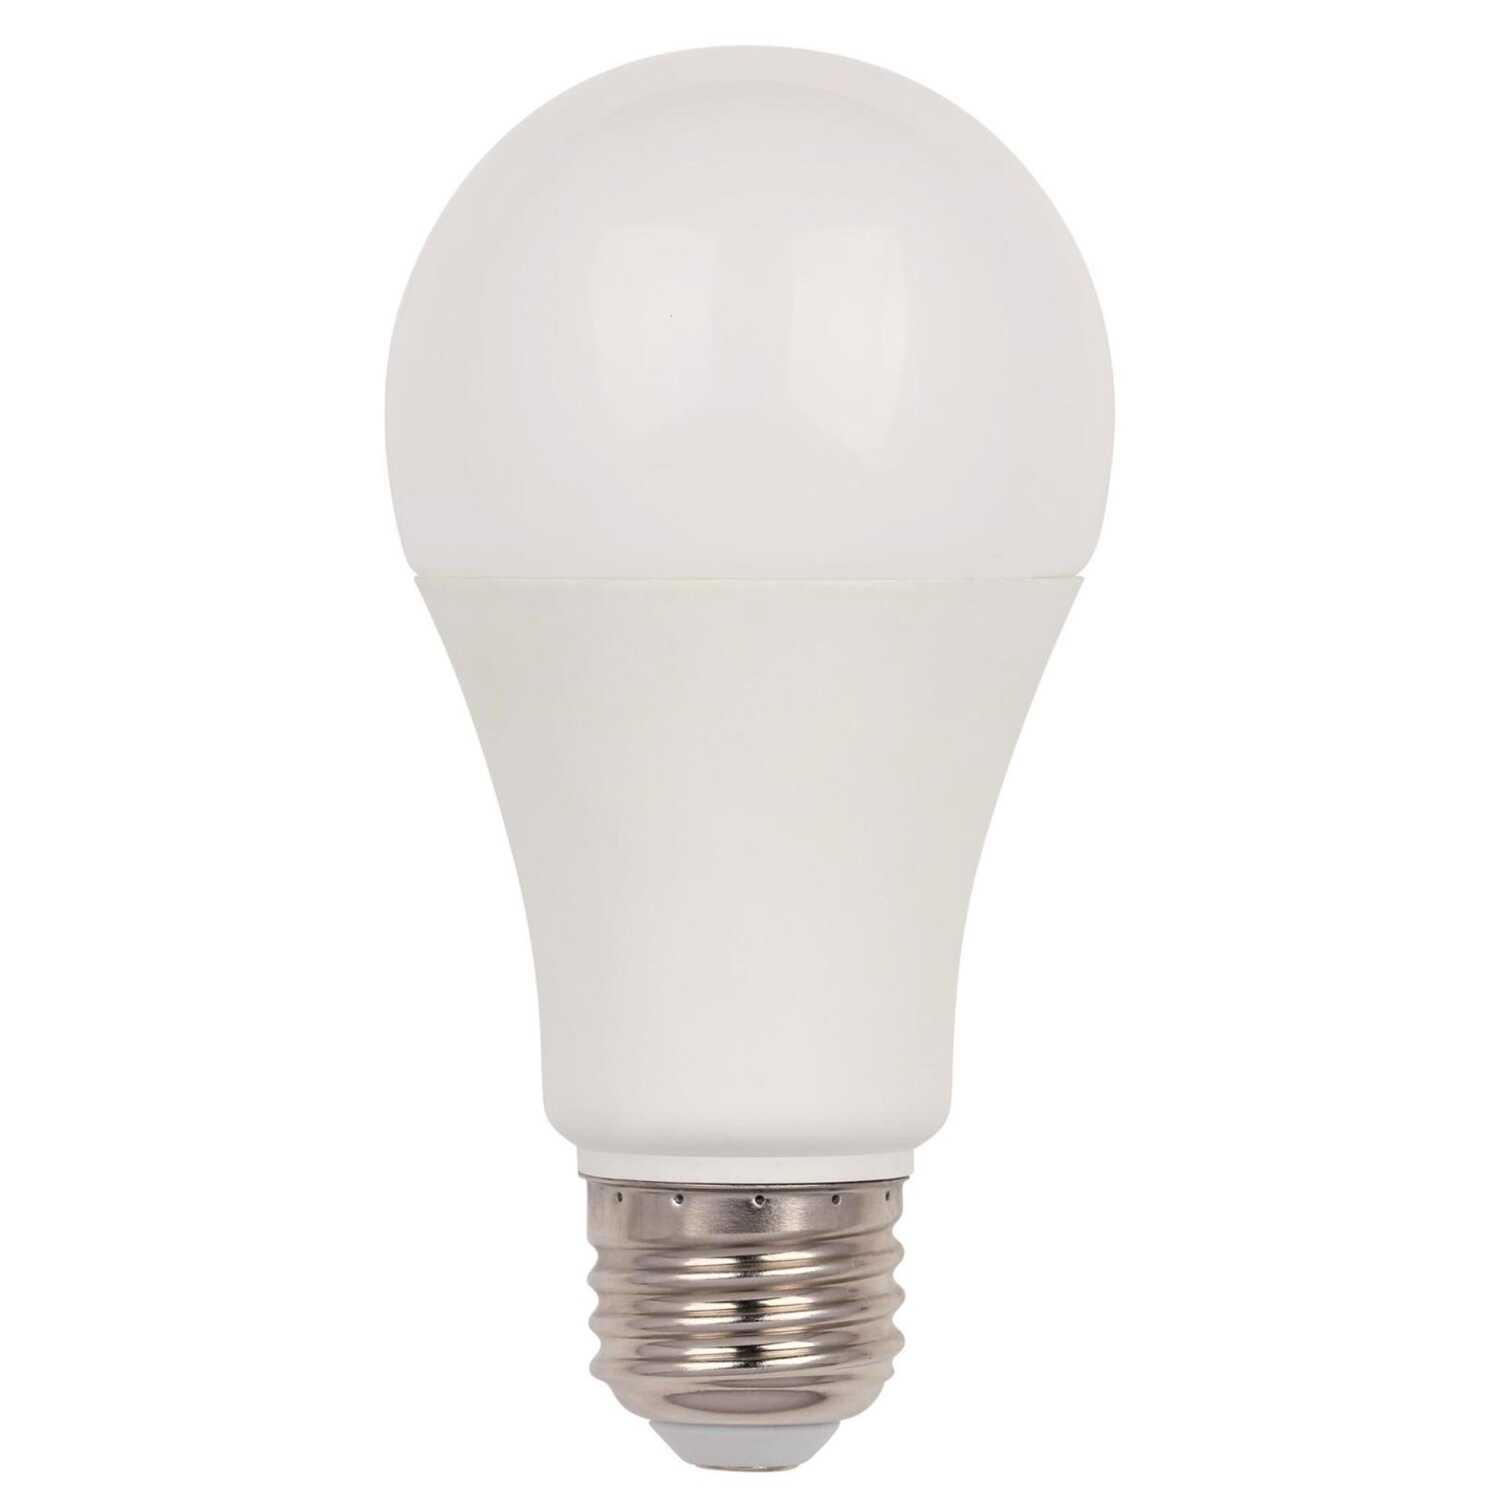 Westinghouse  15.5 watts A19  LED Bulb  1600 lumens Daylight  Decorative  100 Watt Equivalence